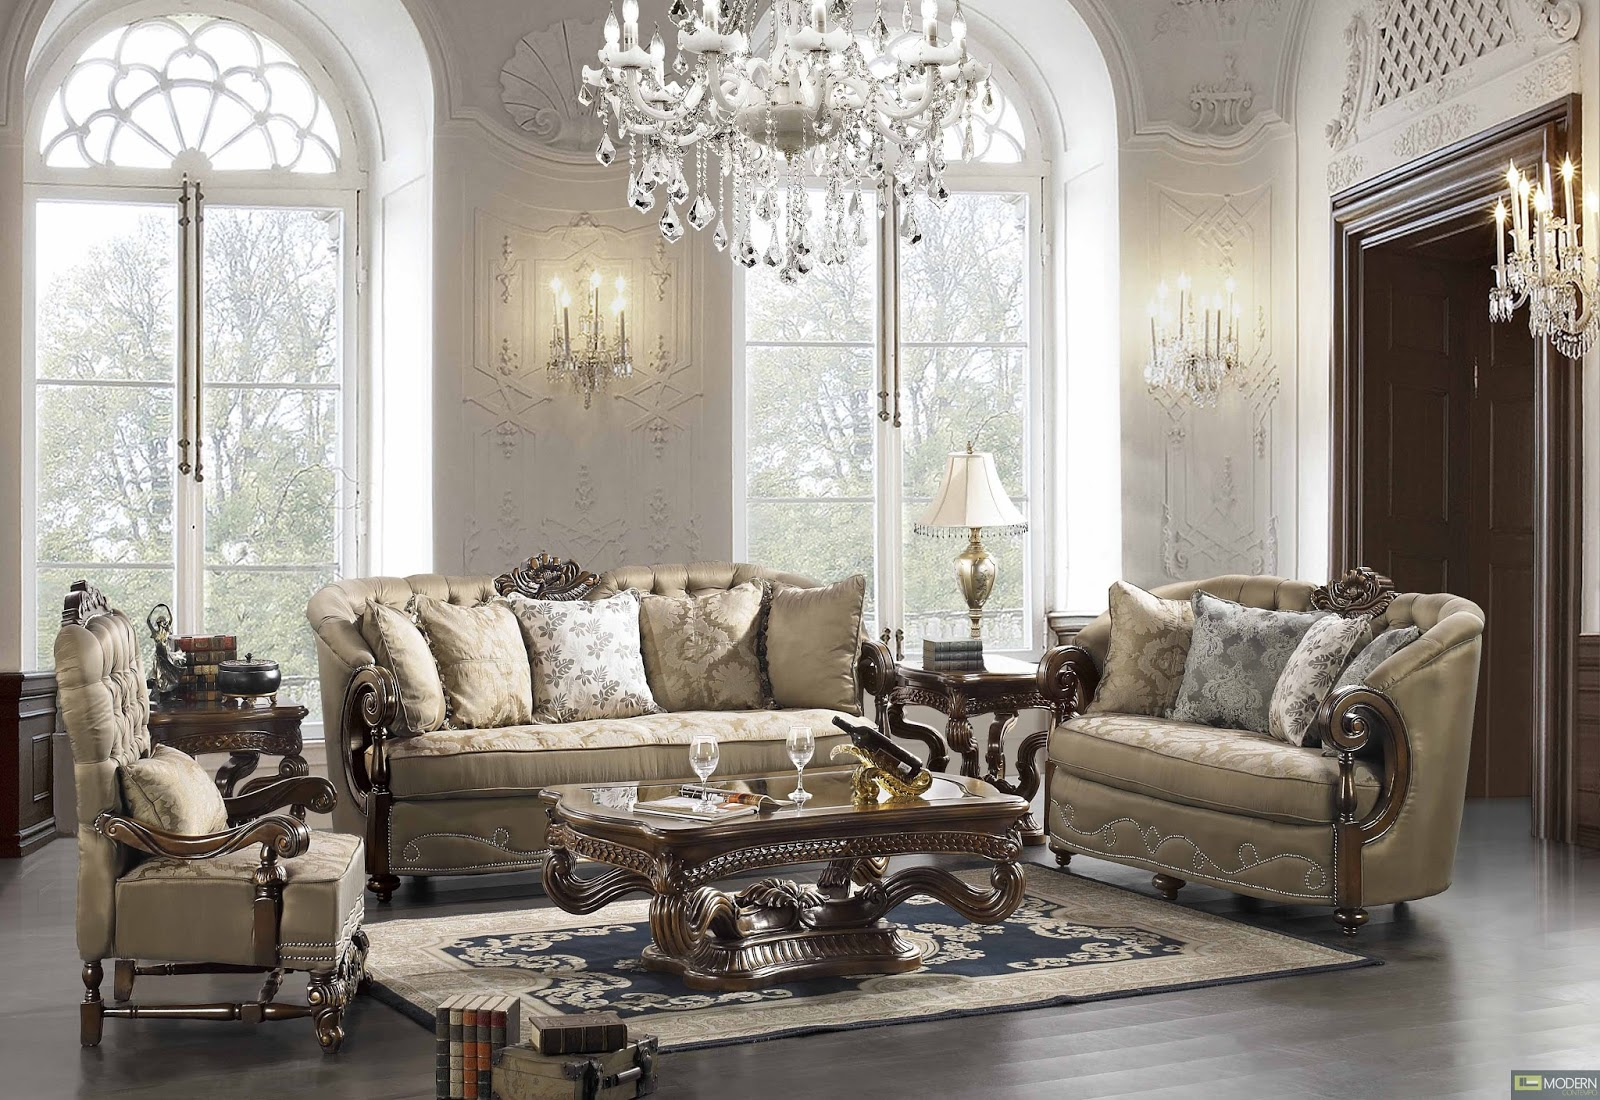 Traditional Clic Furniture Styles Elegant Living Room Design Ideas With Black Exotic Hardwood Laminate Flooring And